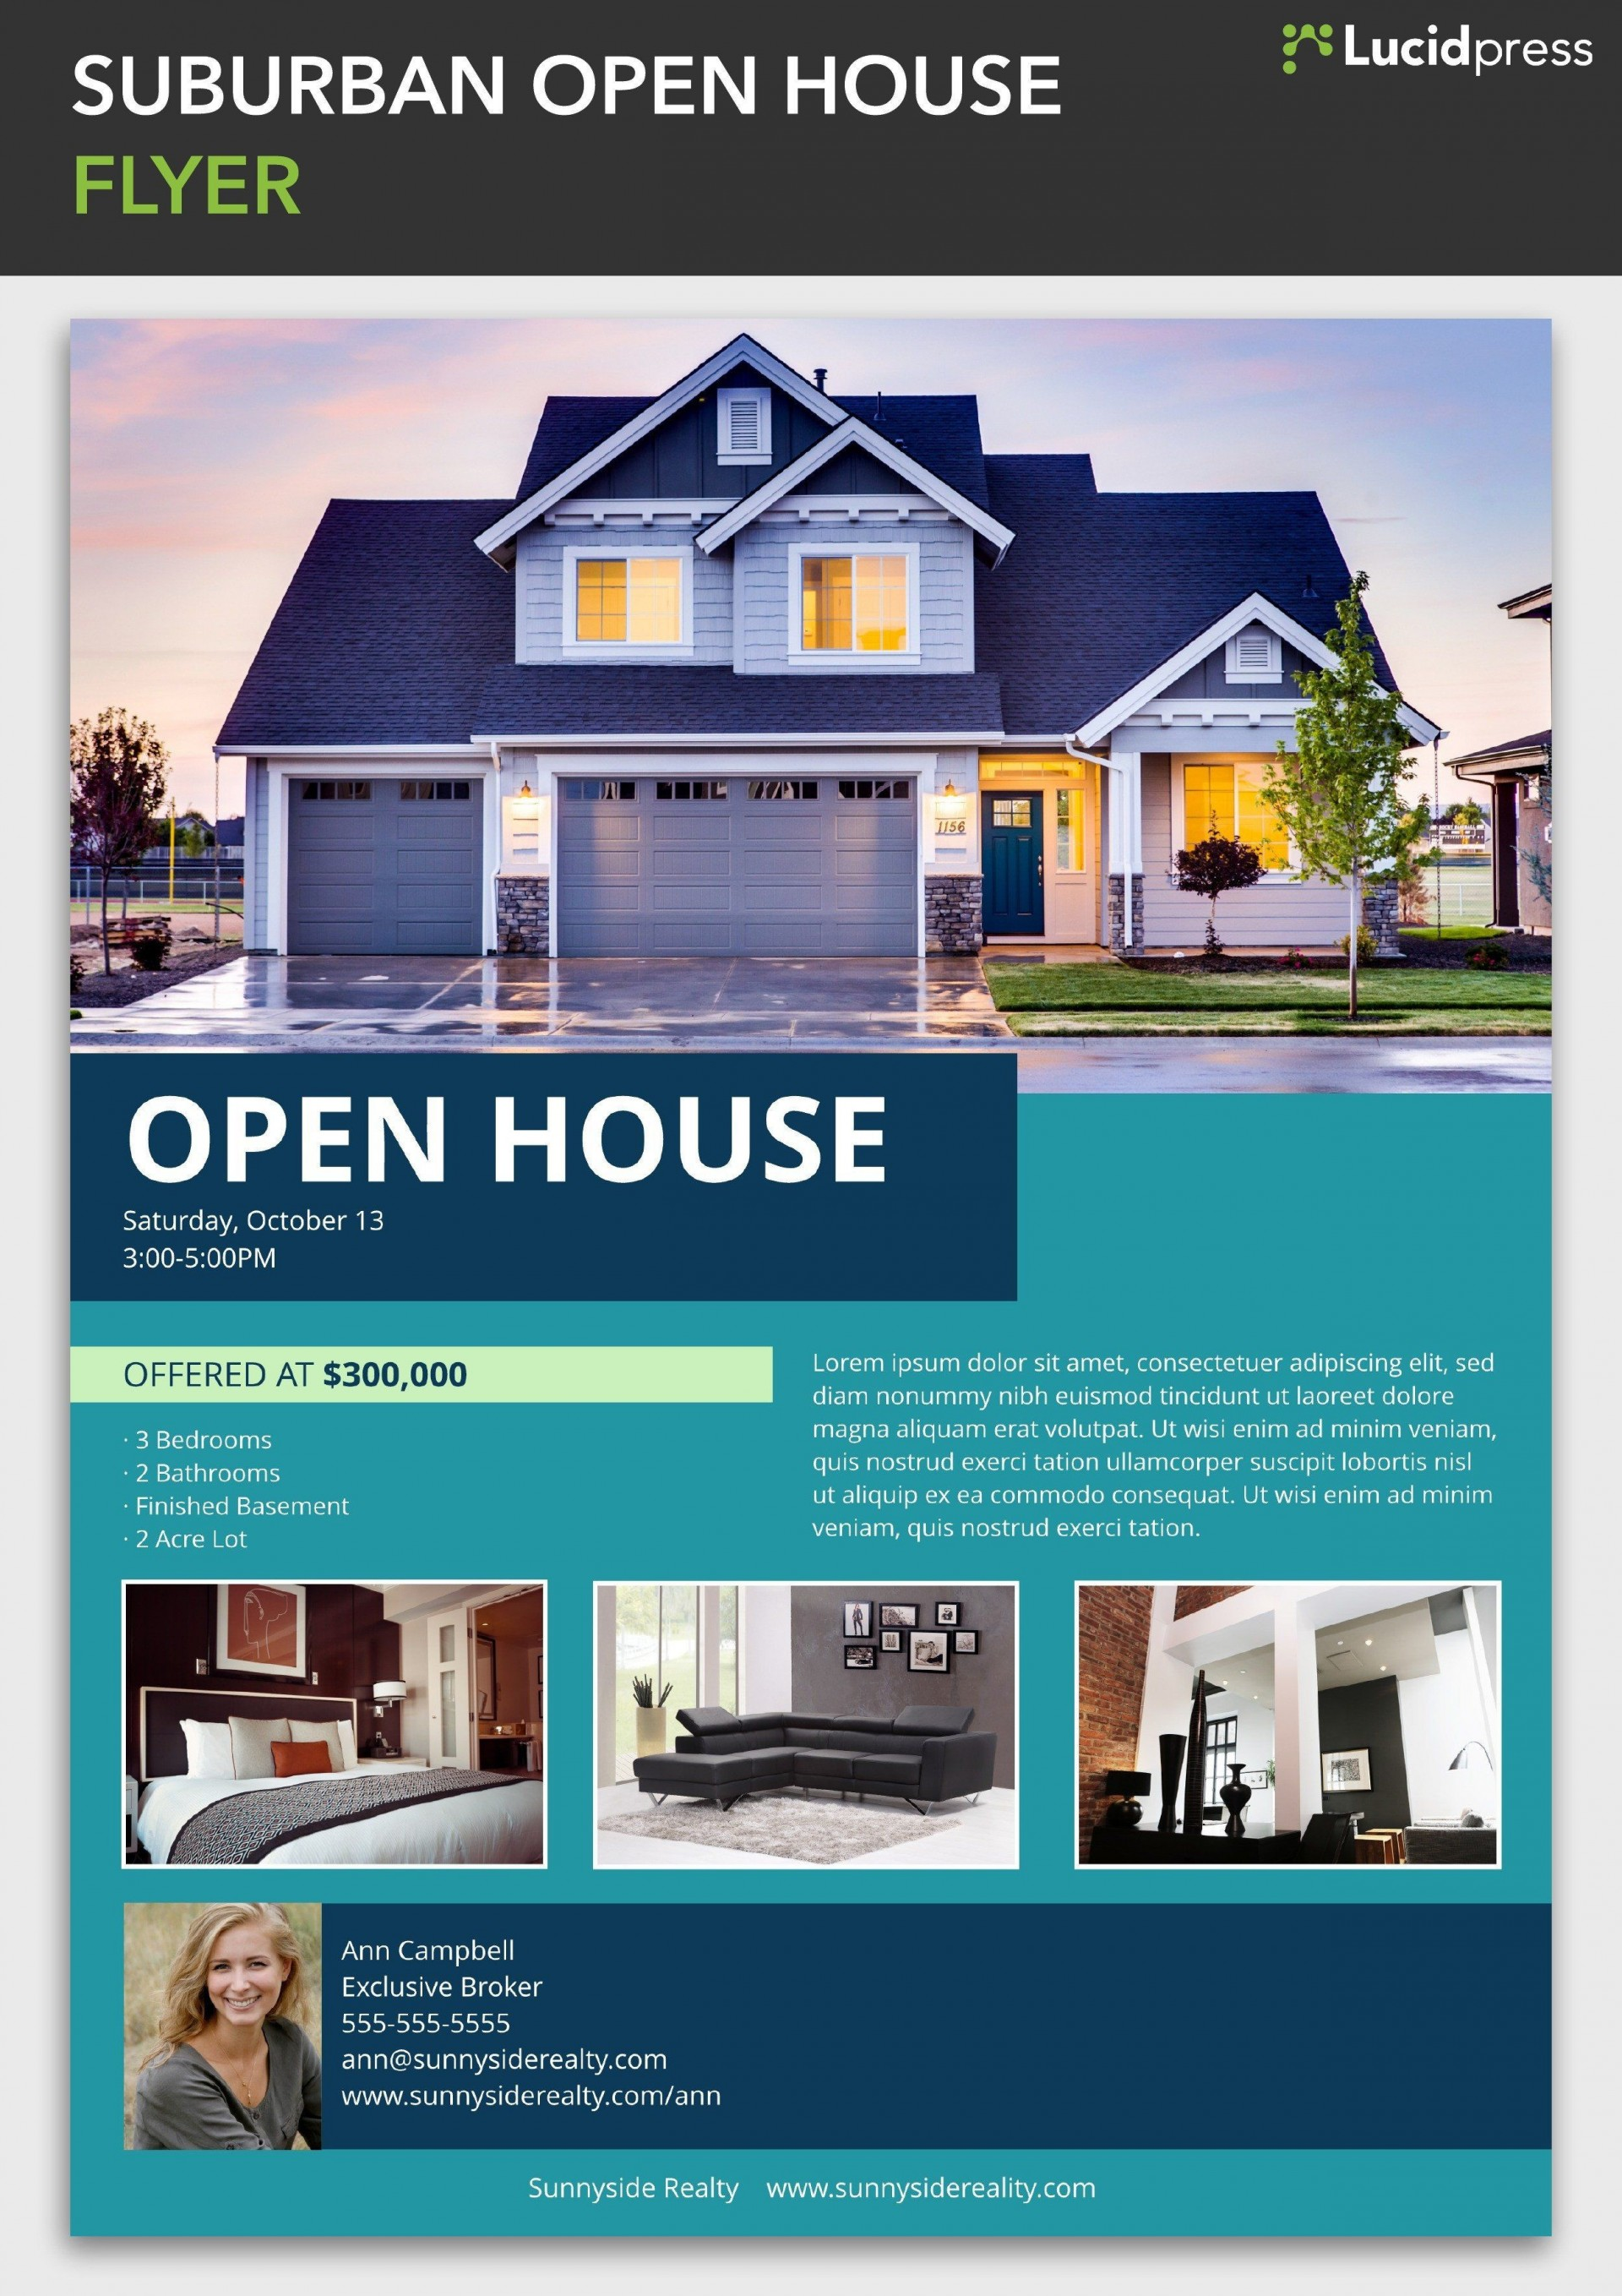 002 Magnificent Open House Flyer Template High Def  Templates Word Free Microsoft Real Estate1920